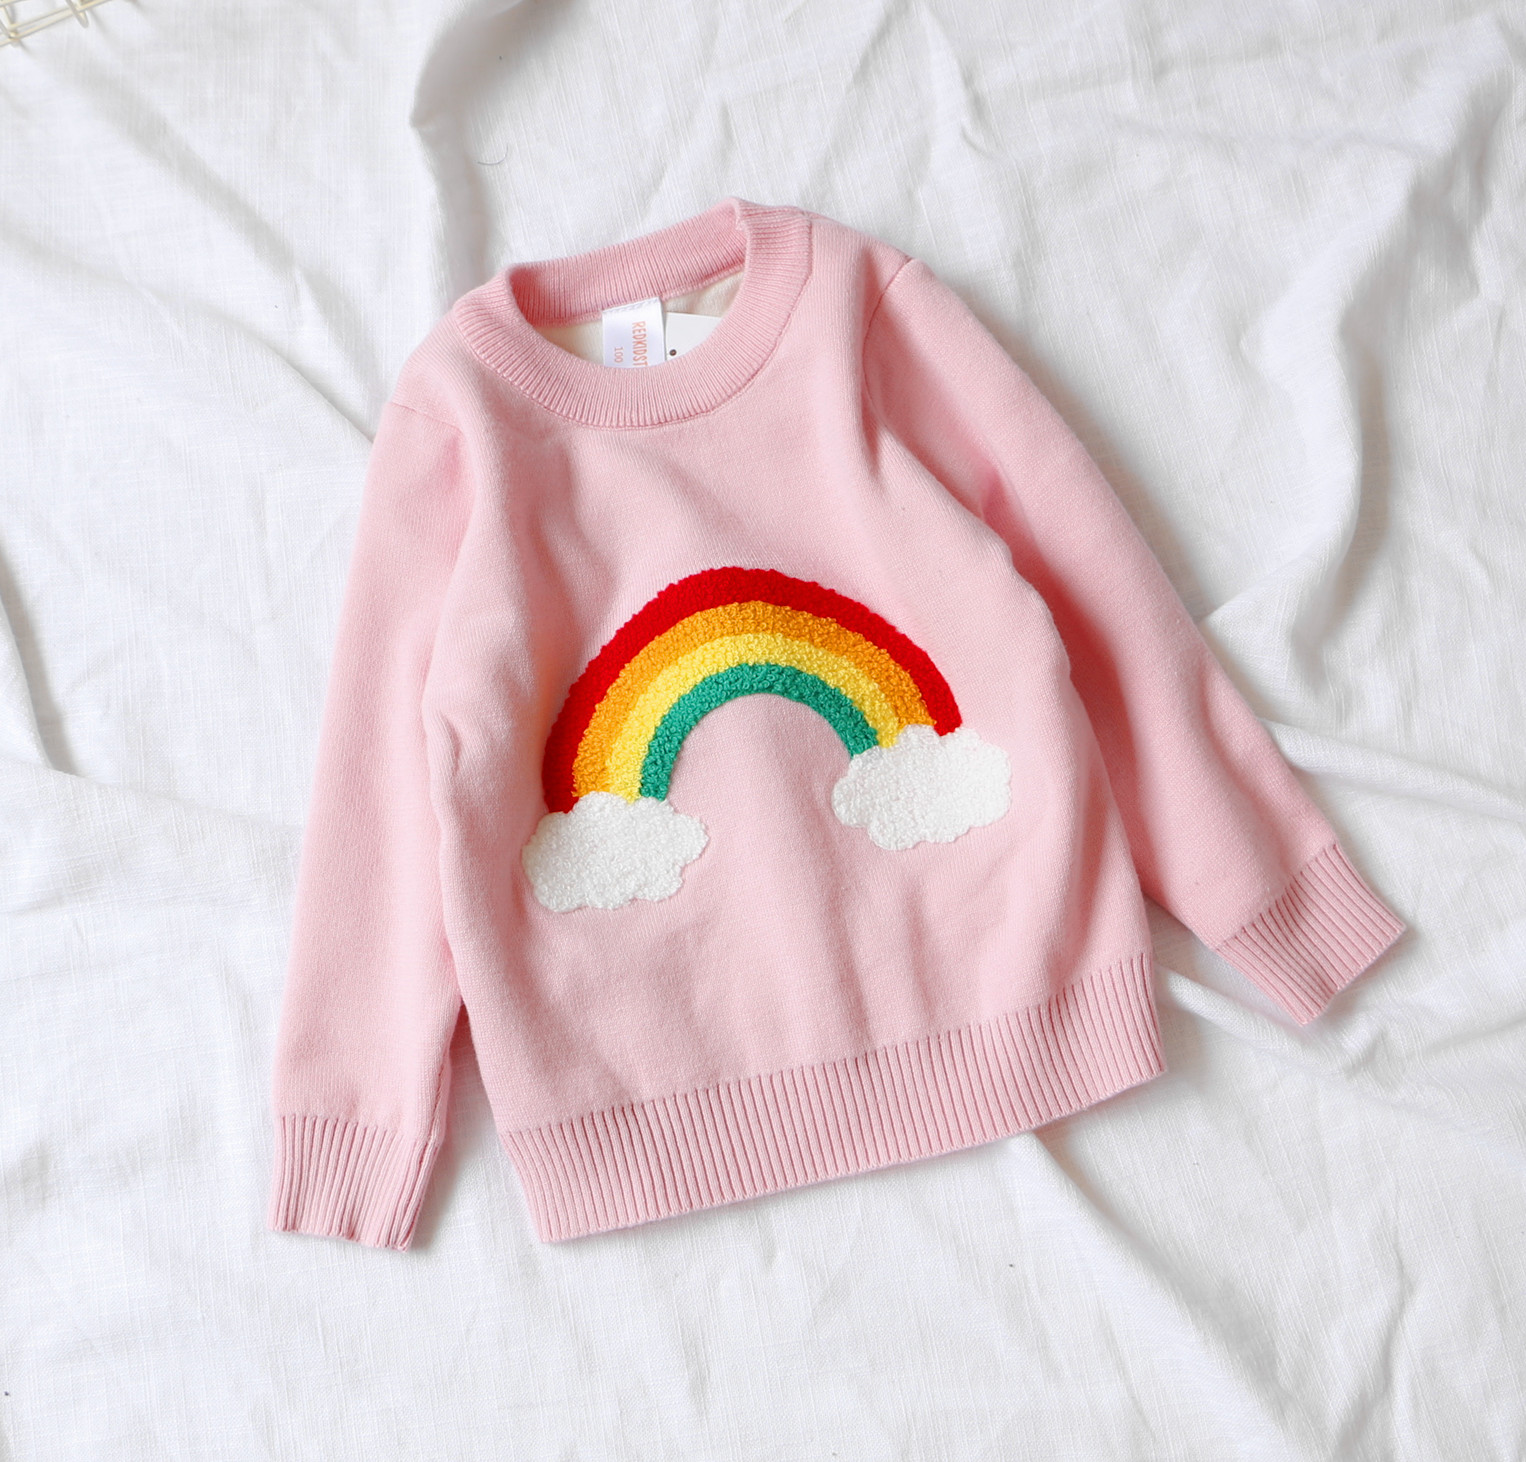 Autumn Baby Girls Sweater Jumper Knitwear Rainbow Cloud Long-Sleeve Pullover for Girls Kids Toddler Sweater Children's Clothing недорго, оригинальная цена